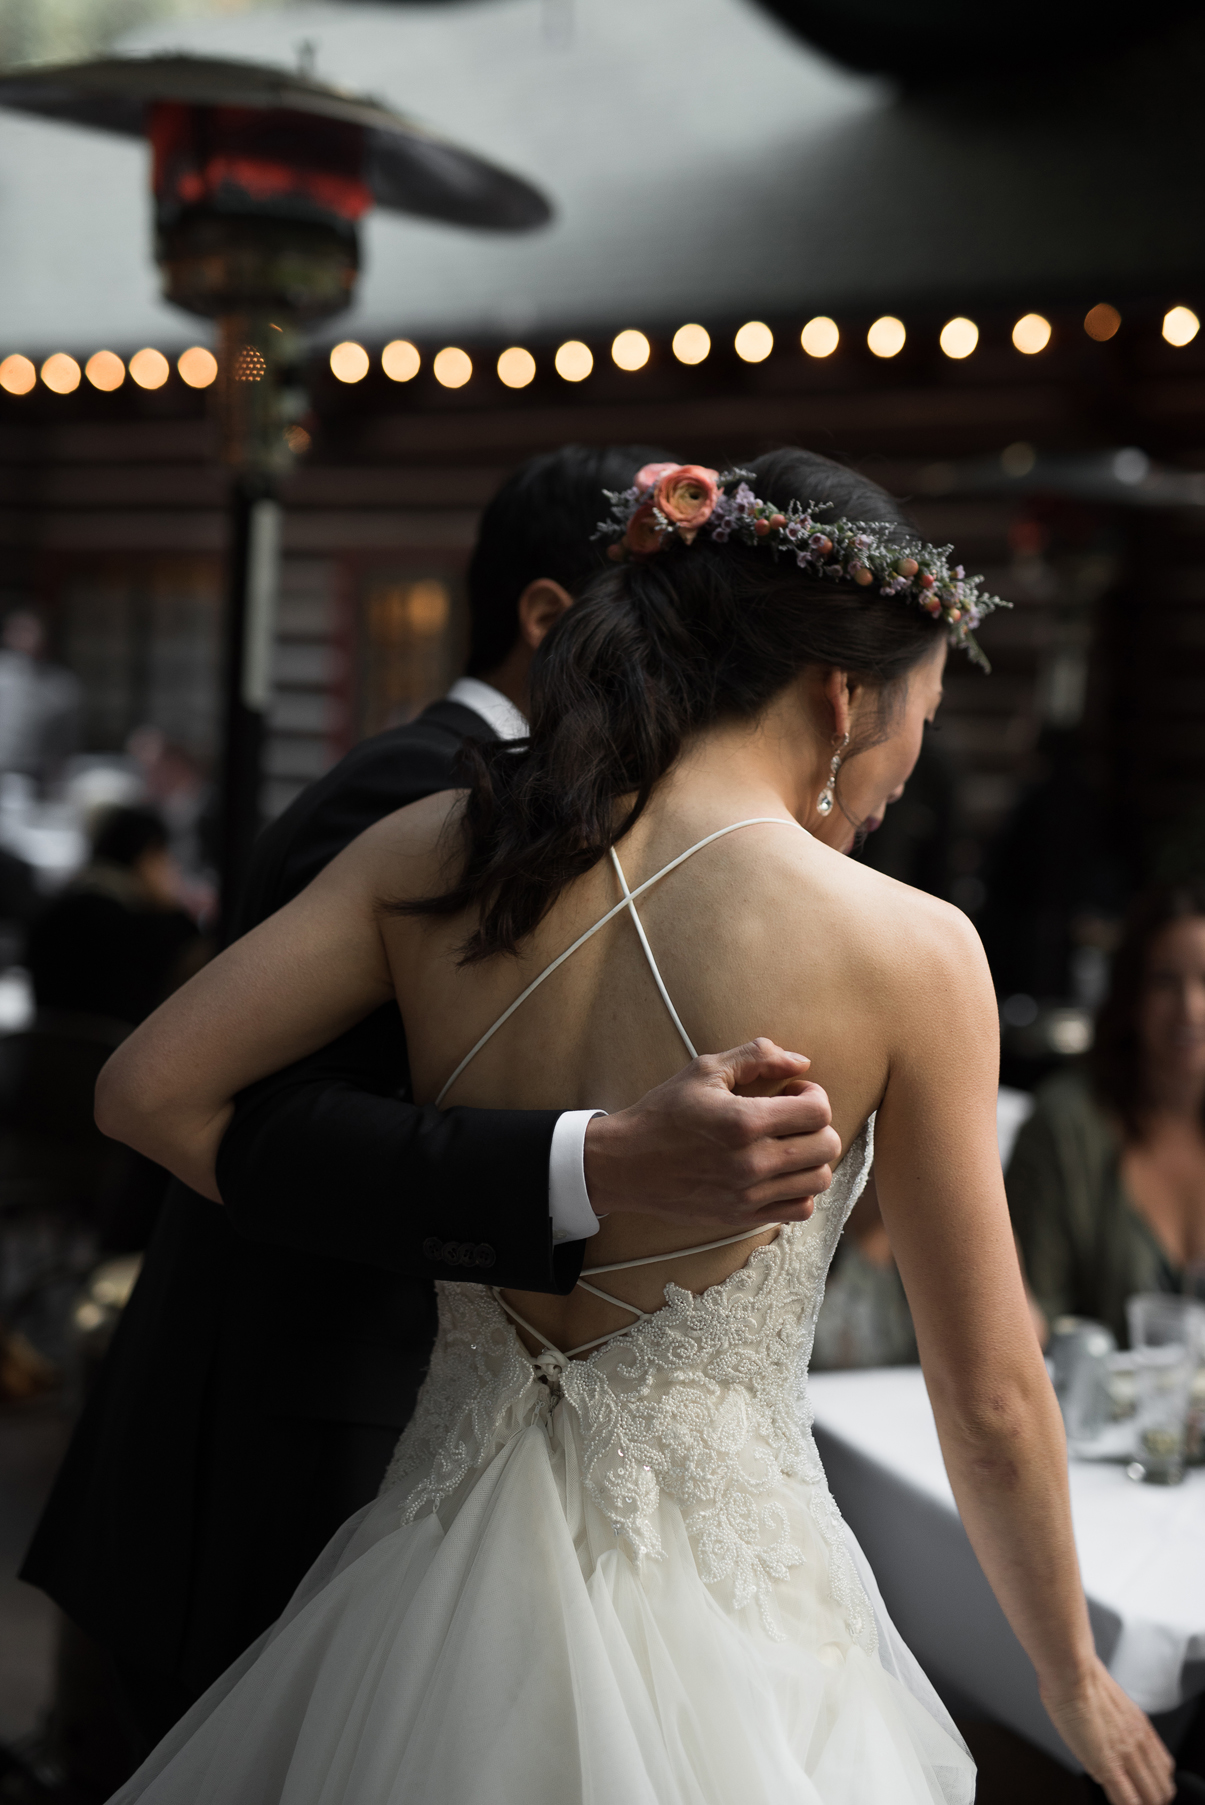 documentary wedding photography of a bride and groom